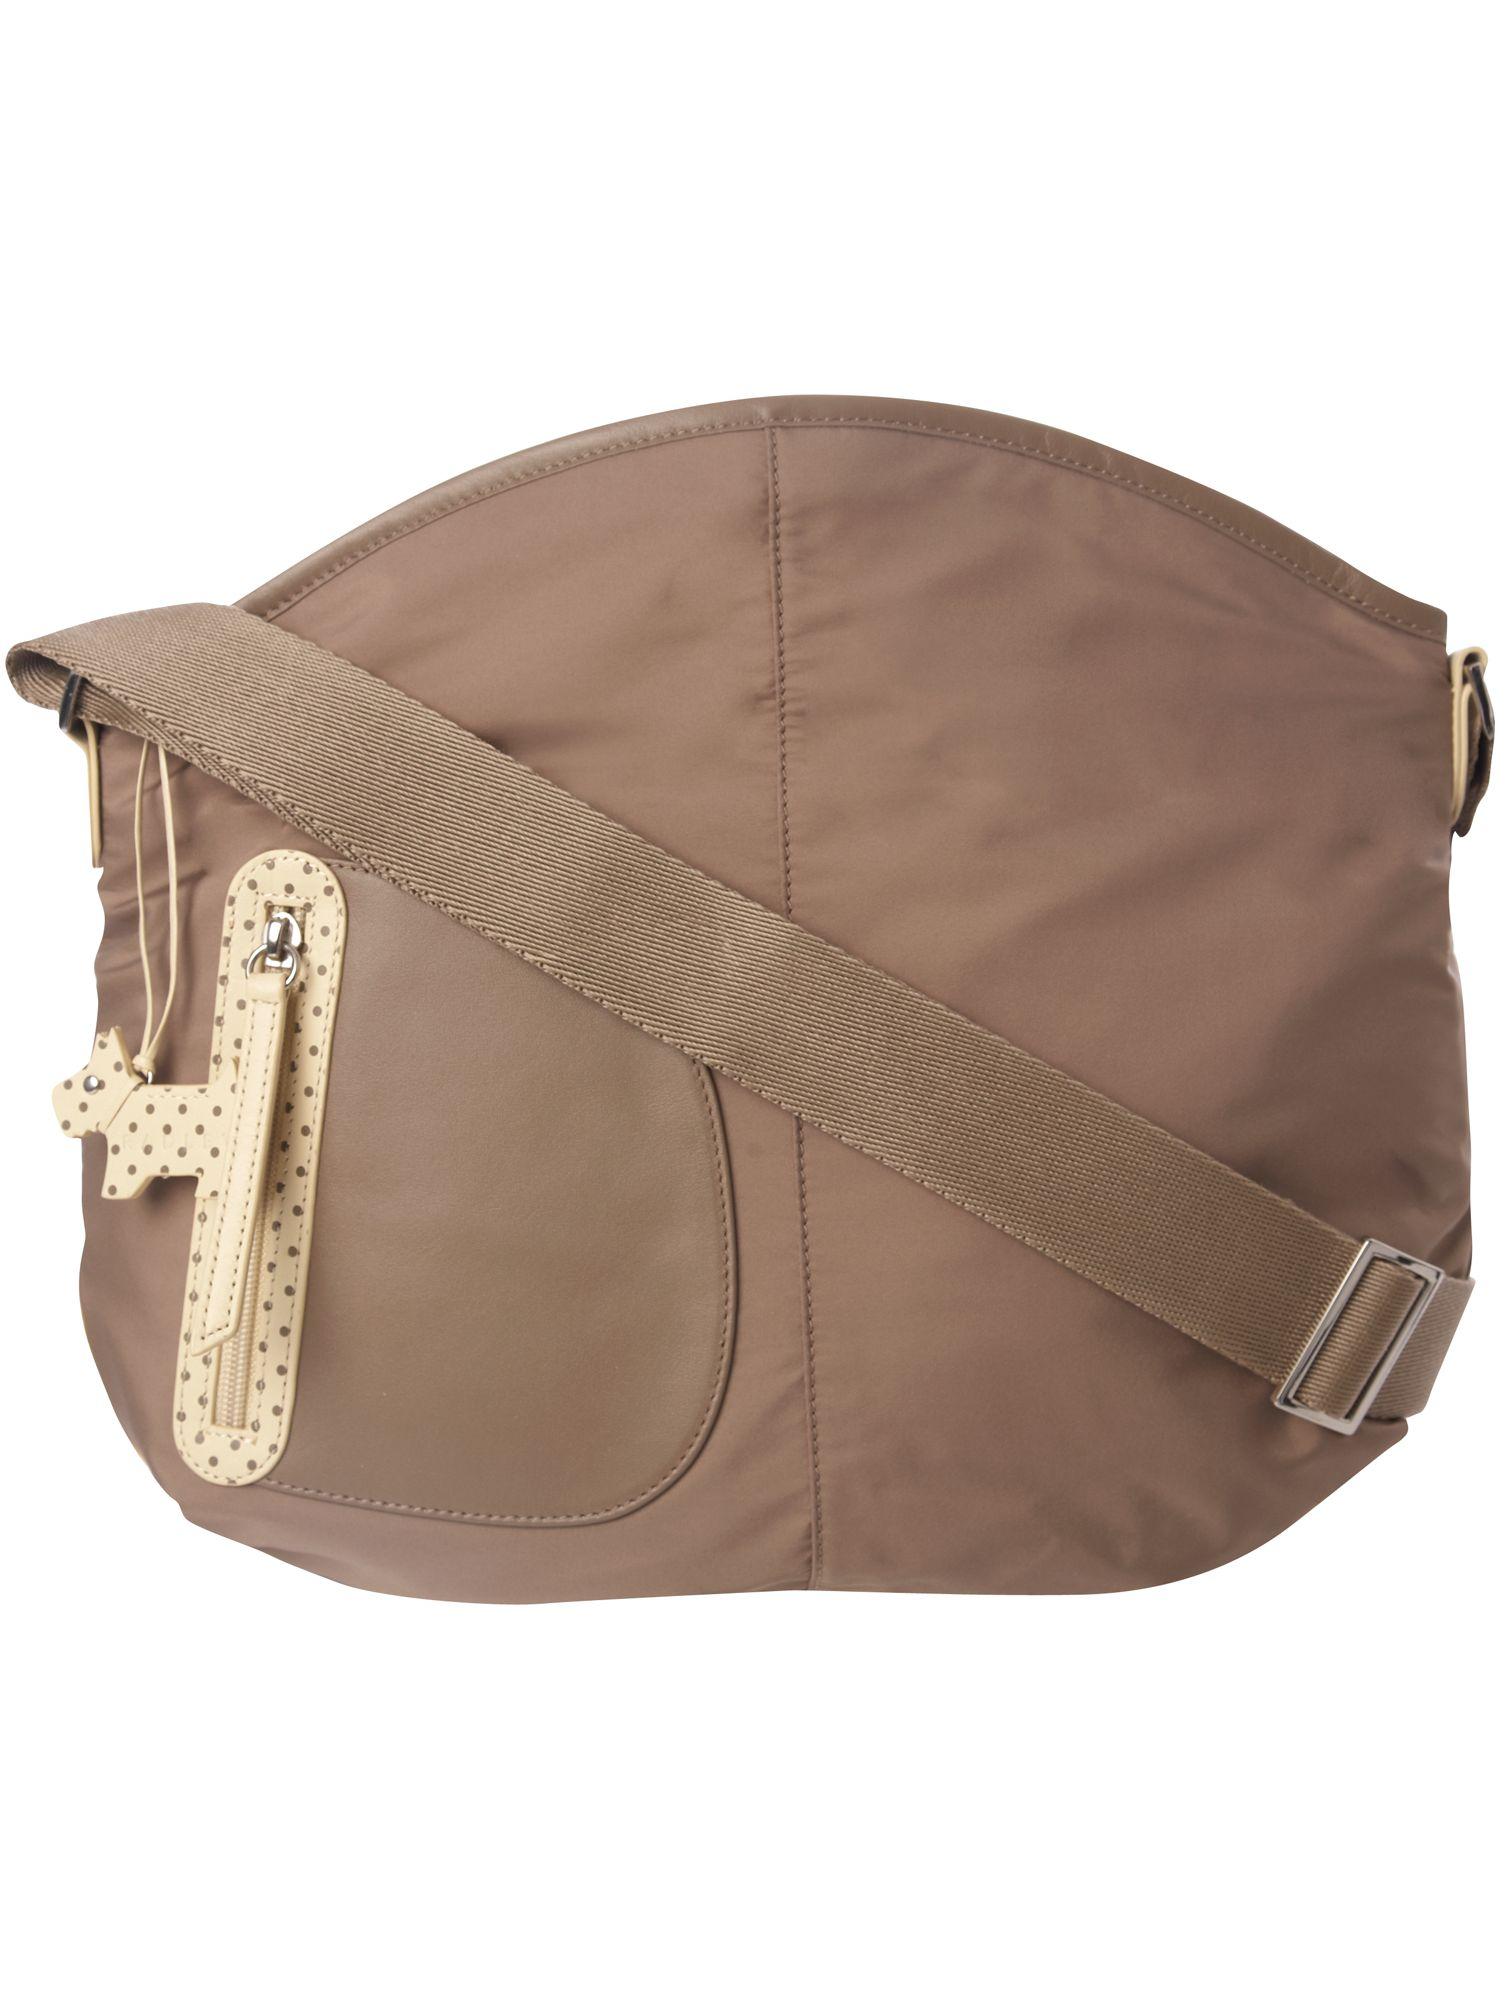 Pursuit nylon large cross body bag